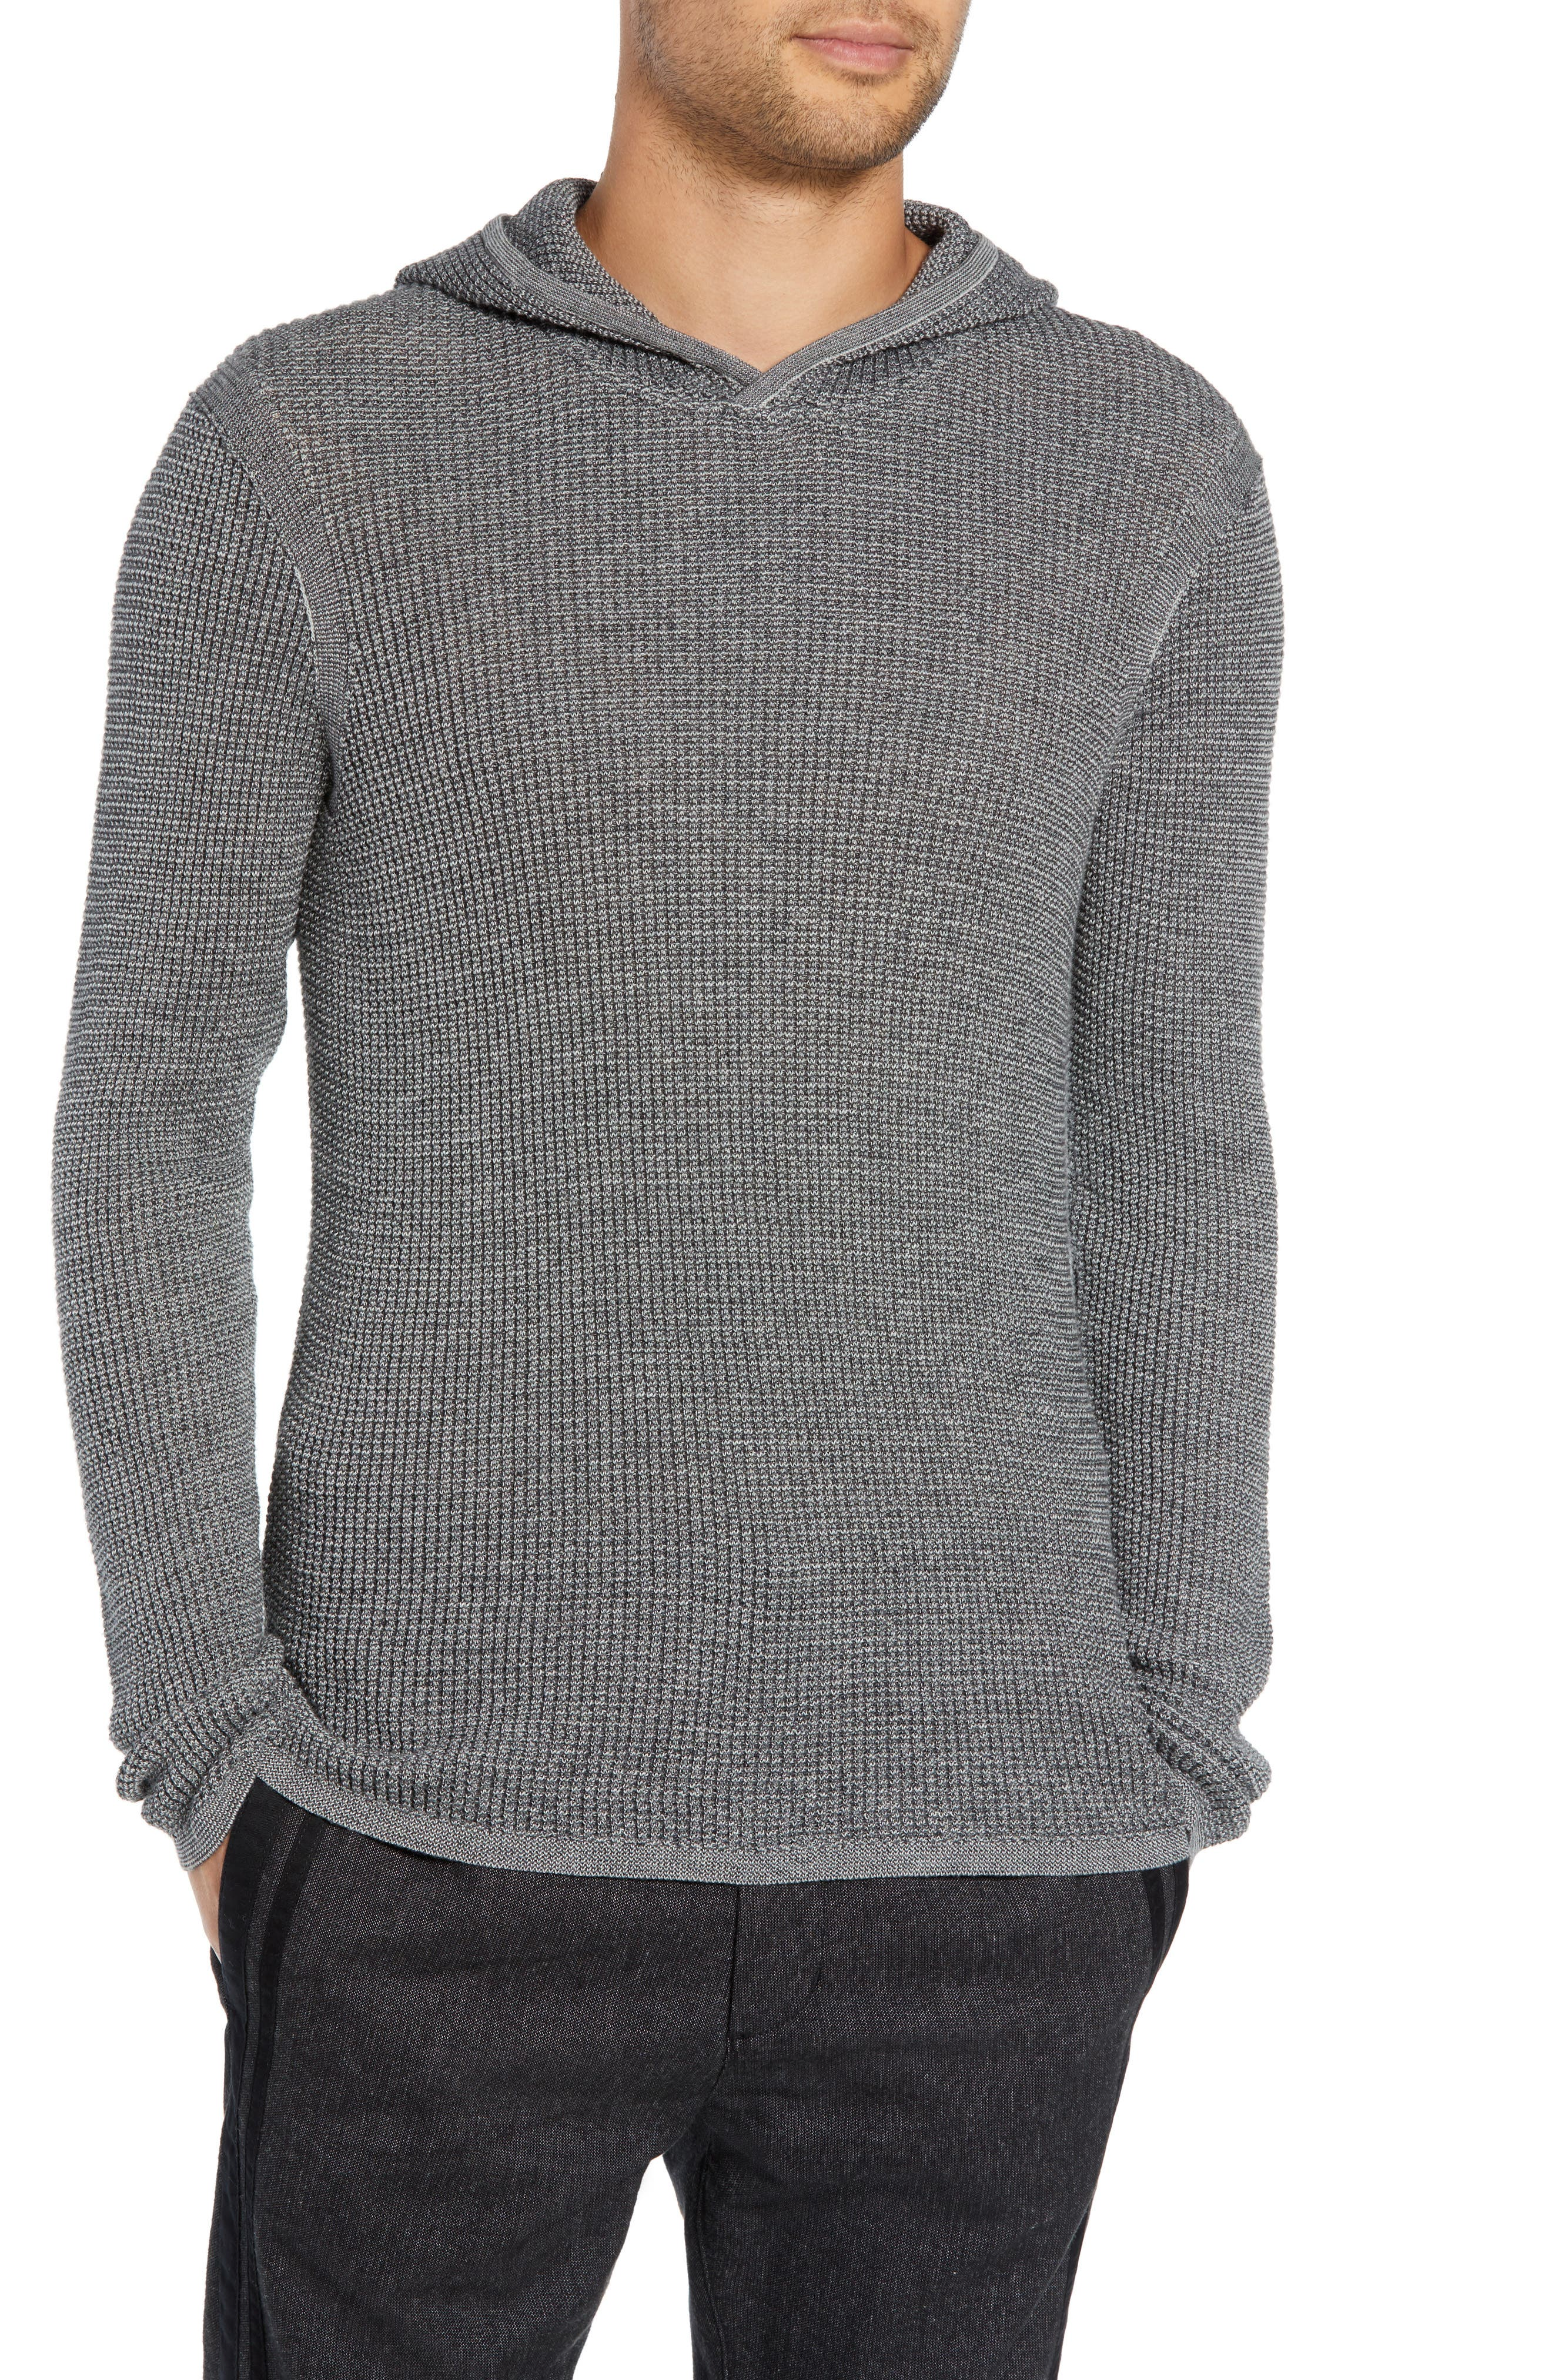 Thermal Hooded Sweater,                         Main,                         color, CHARCOAL HEATHER